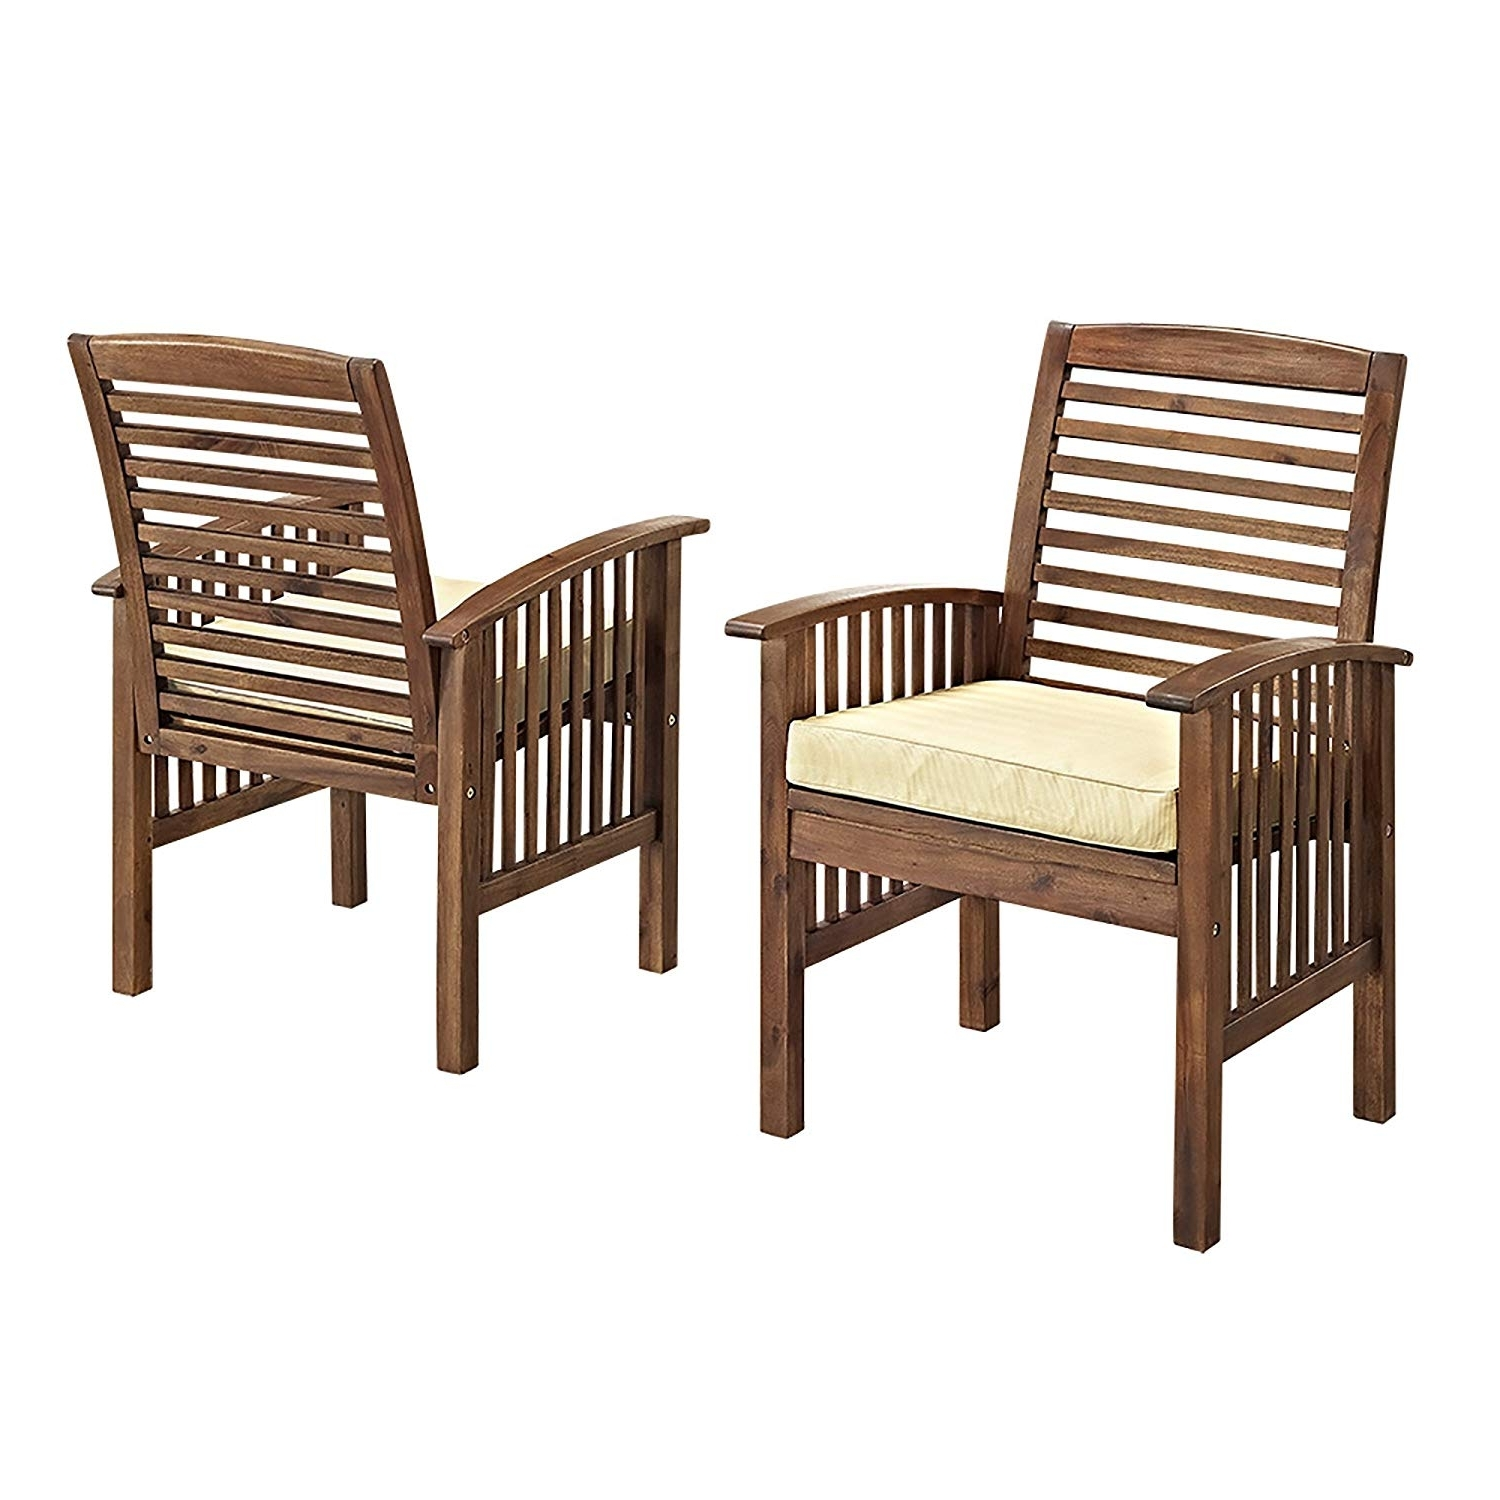 Amazon : We Furniture Solid Acacia Wood 4 Piece Patio Chat Set Regarding Latest Patio Conversation Sets With Cushions (View 1 of 15)